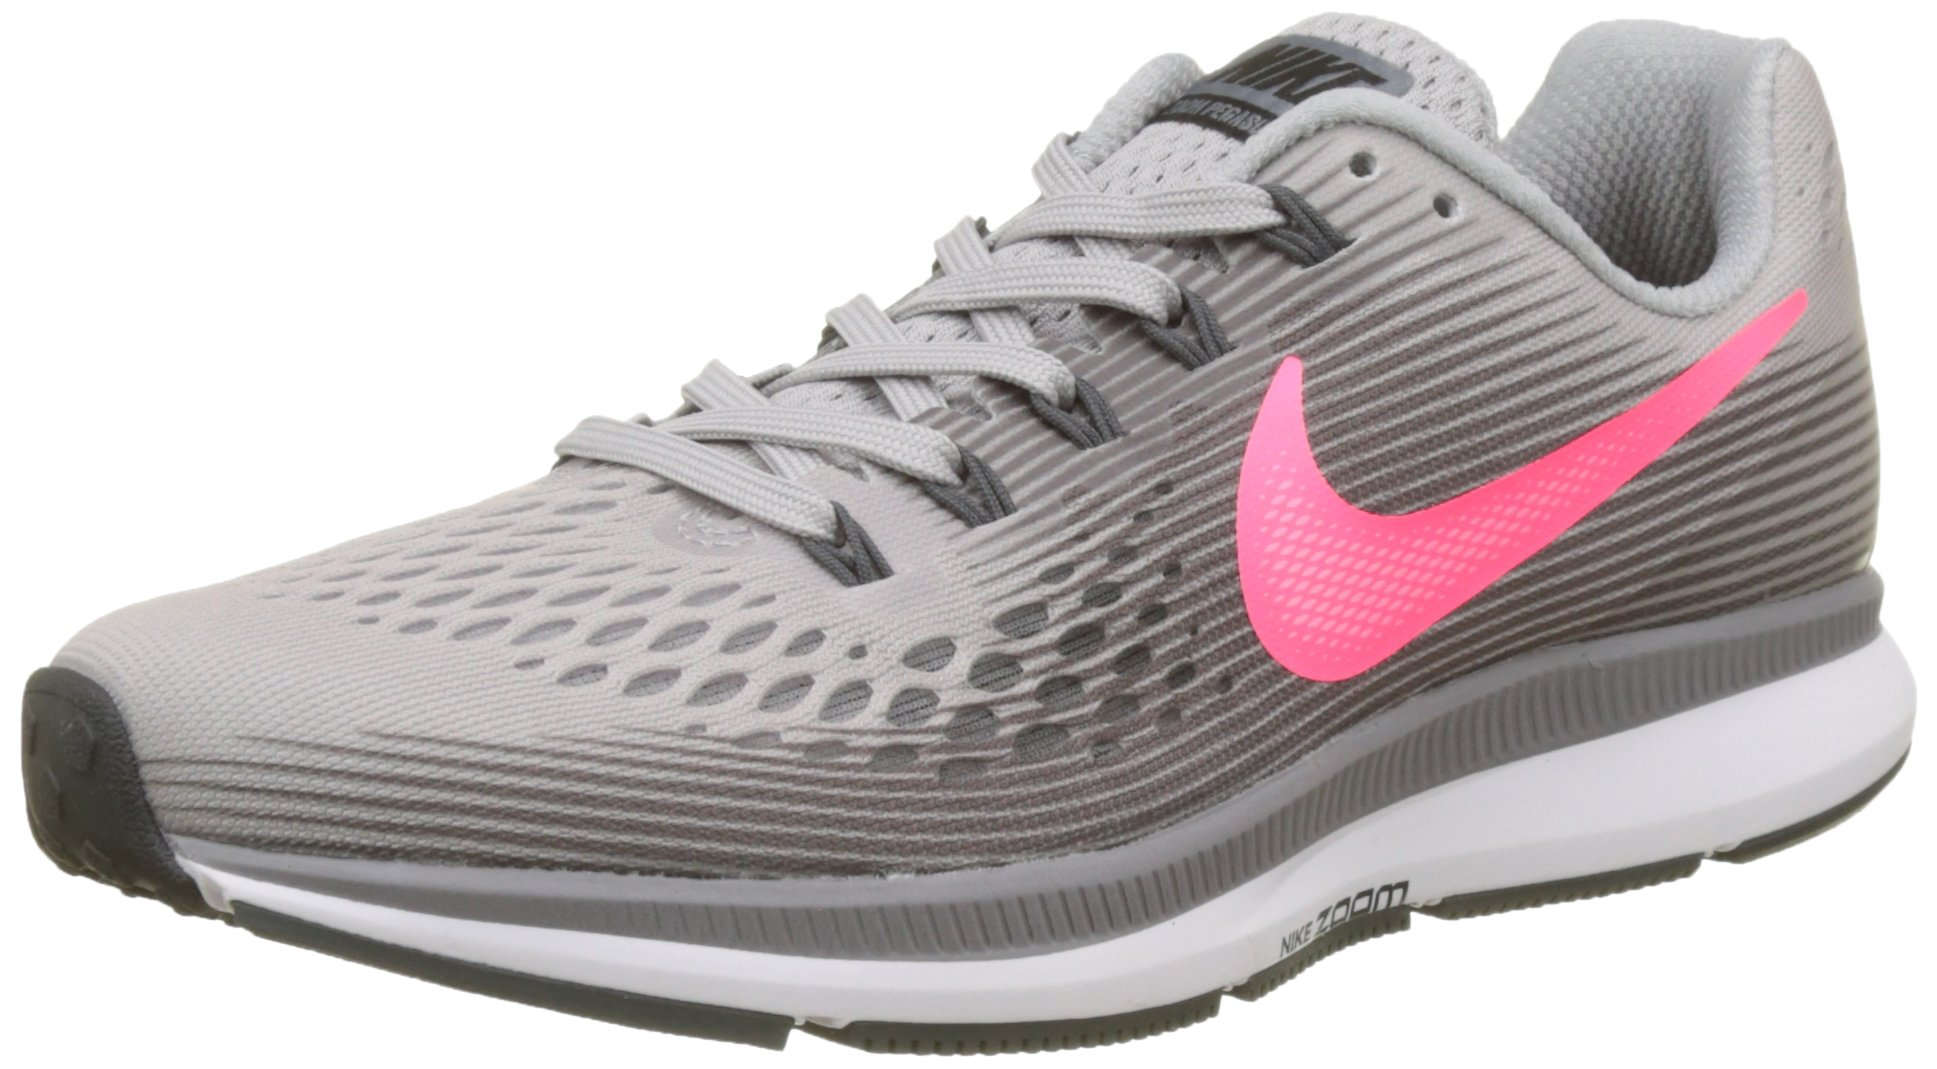 Nike Women's Air Zoom Pegasus 34 Running Shoes (9 B US, Atmosphere Grey/Racer Pink/Gunsmoke)